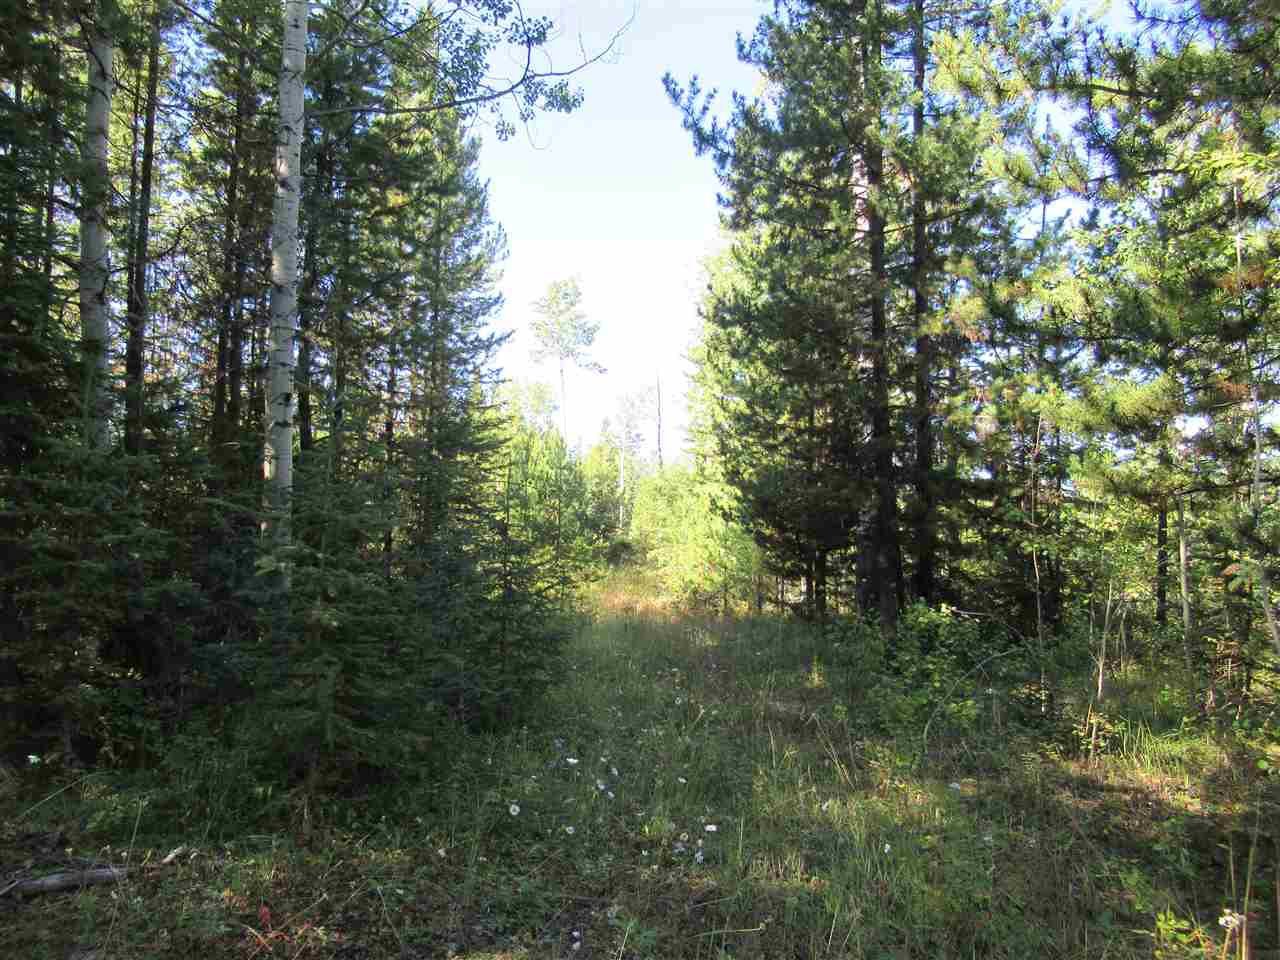 Photo 5: Photos: DL 6426 TONKA Road: 150 Mile House Land for sale (Williams Lake (Zone 27))  : MLS®# R2497364